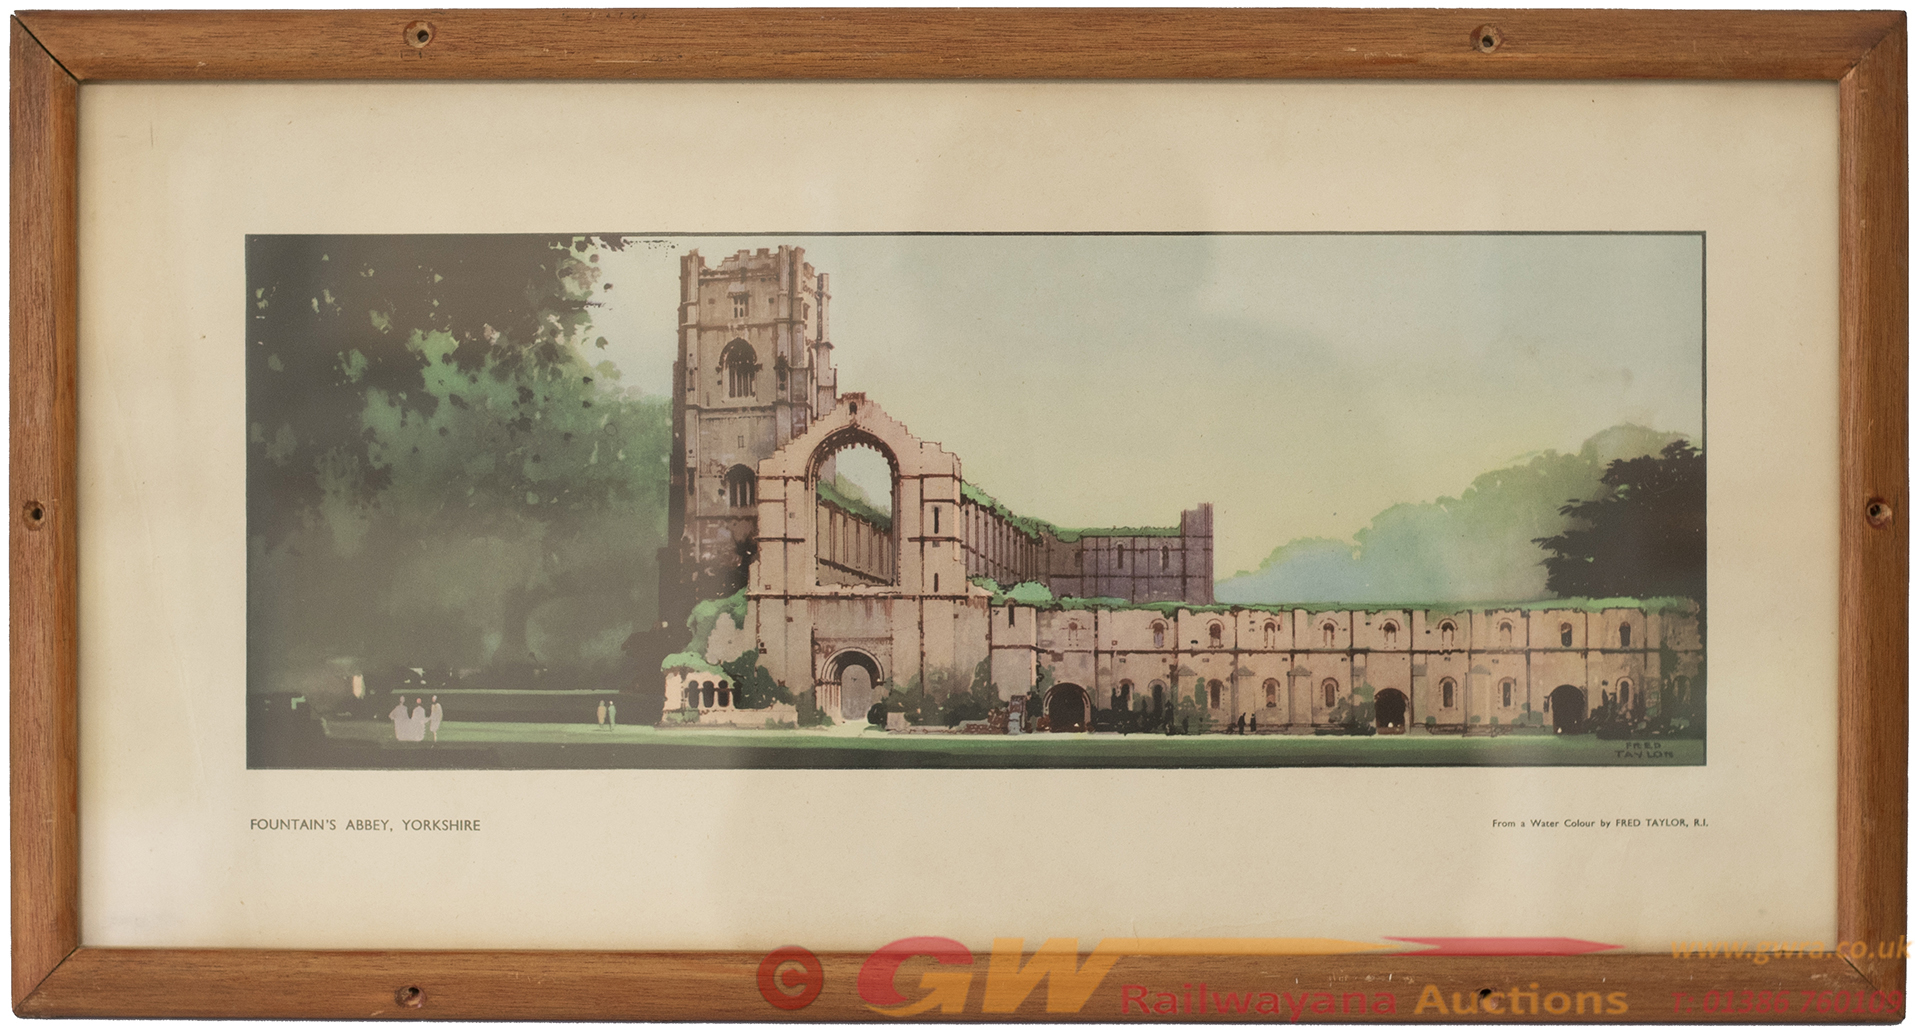 Carriage Print FOUNTAIN'S ABBEY, YORKSHIRE From An